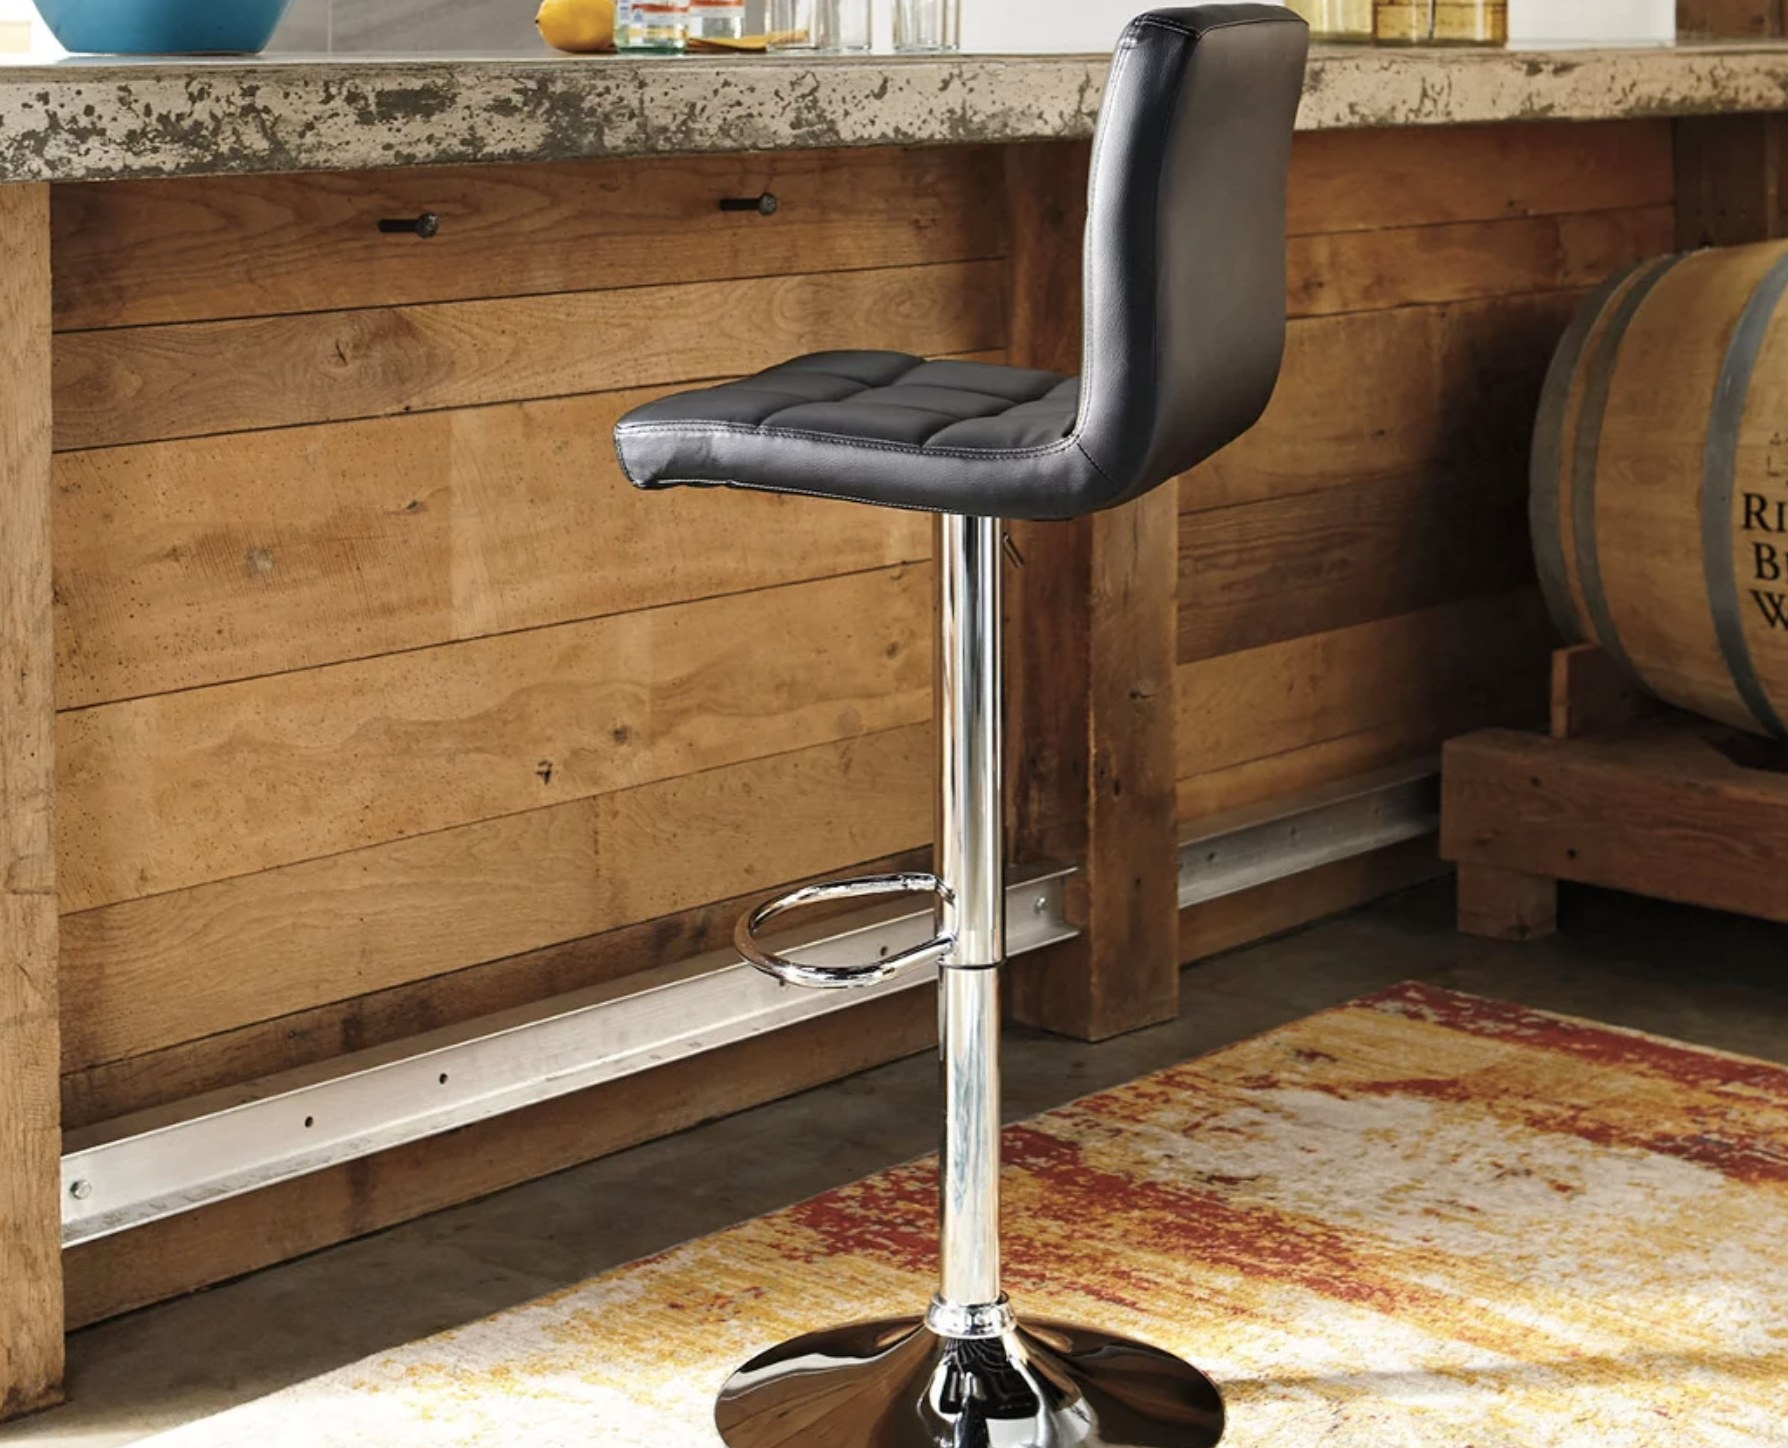 The black leather and chrome bar stool